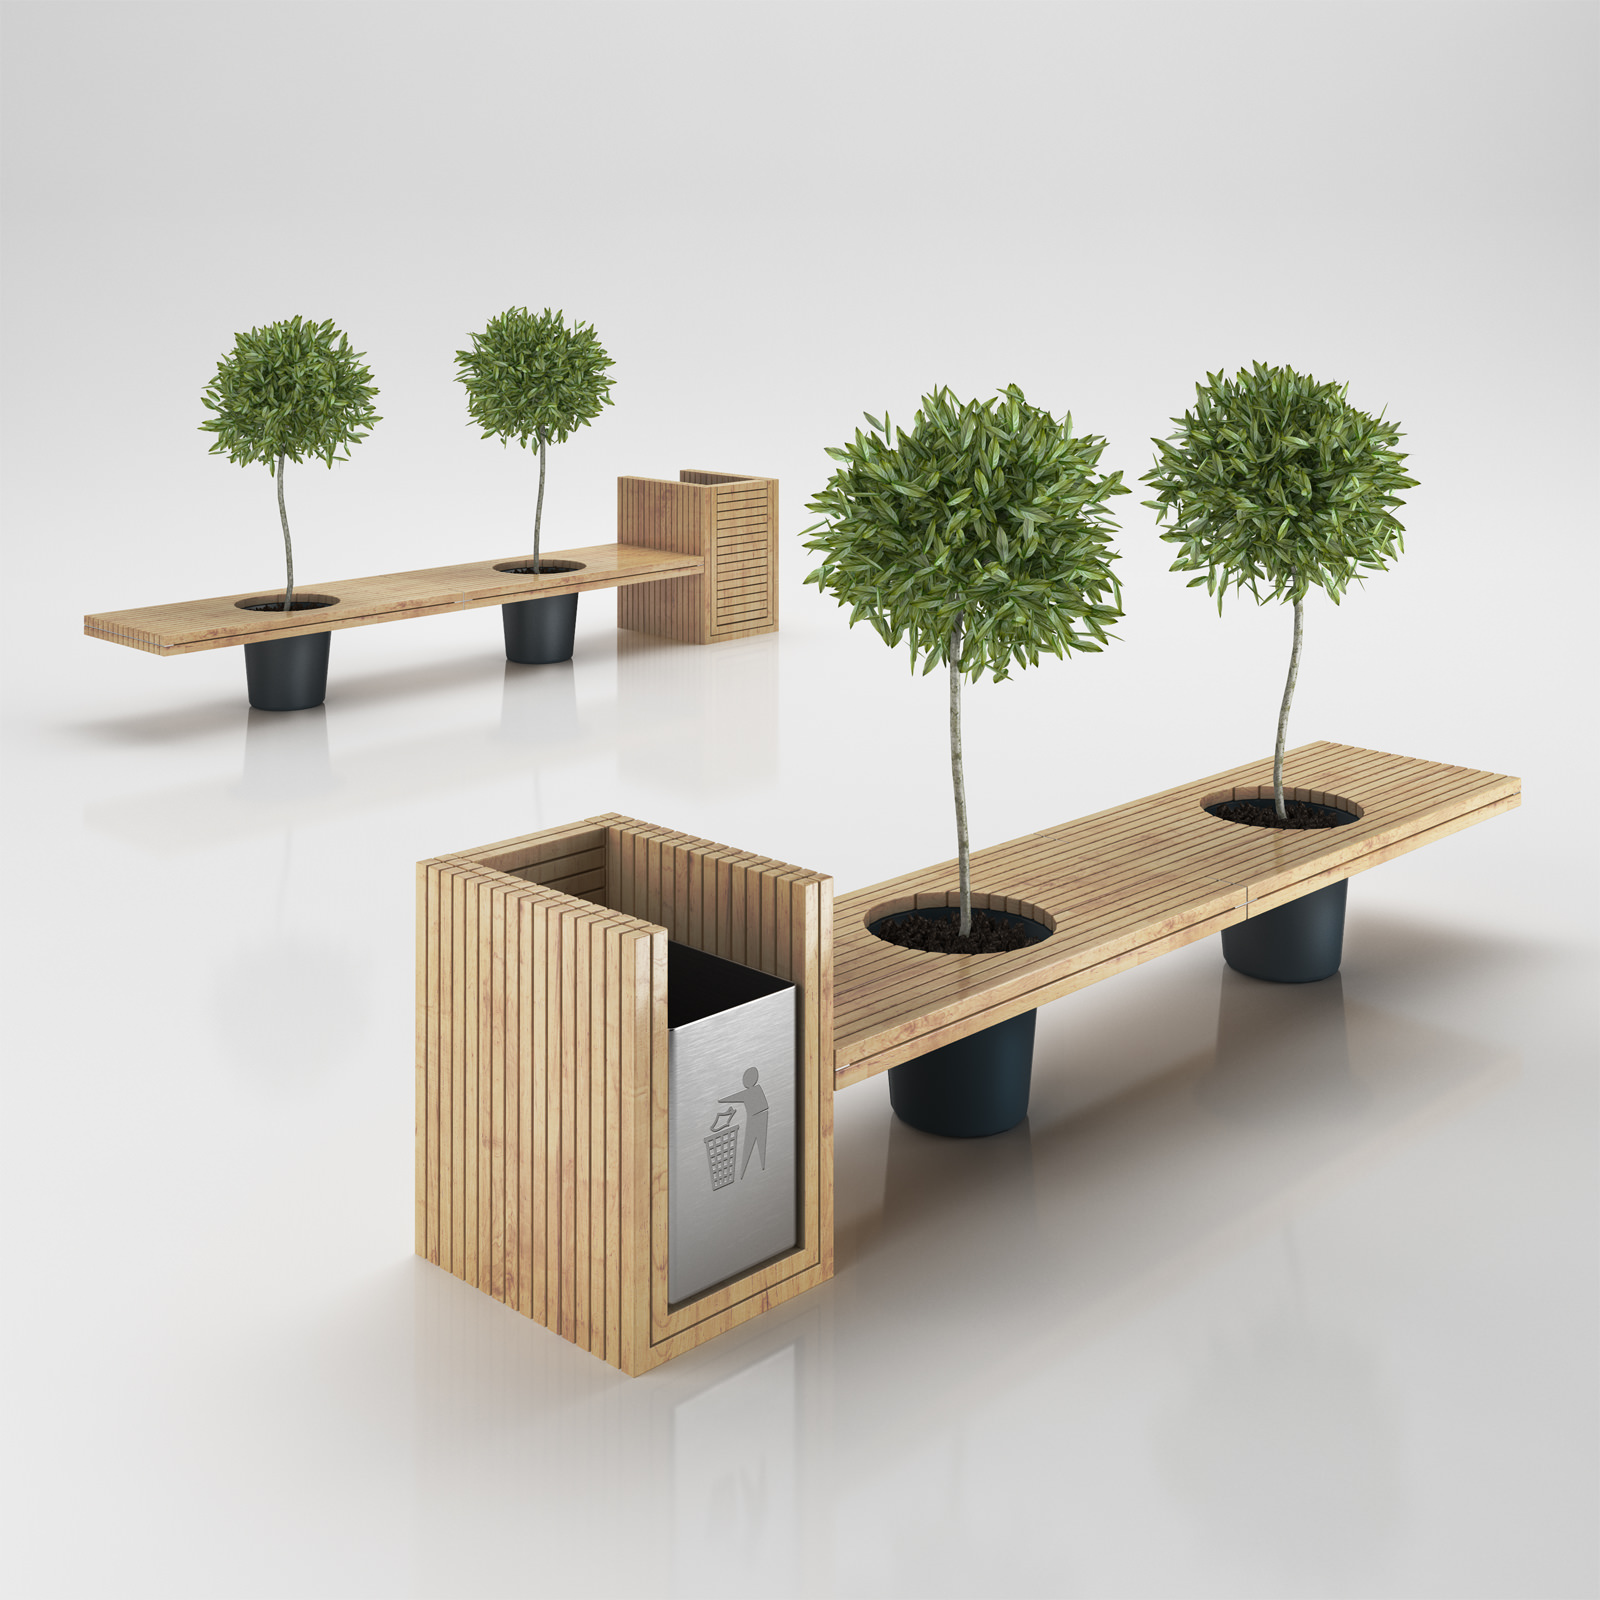 Wooden Eco Design Bench With Integrated Tr 3D Model MAX